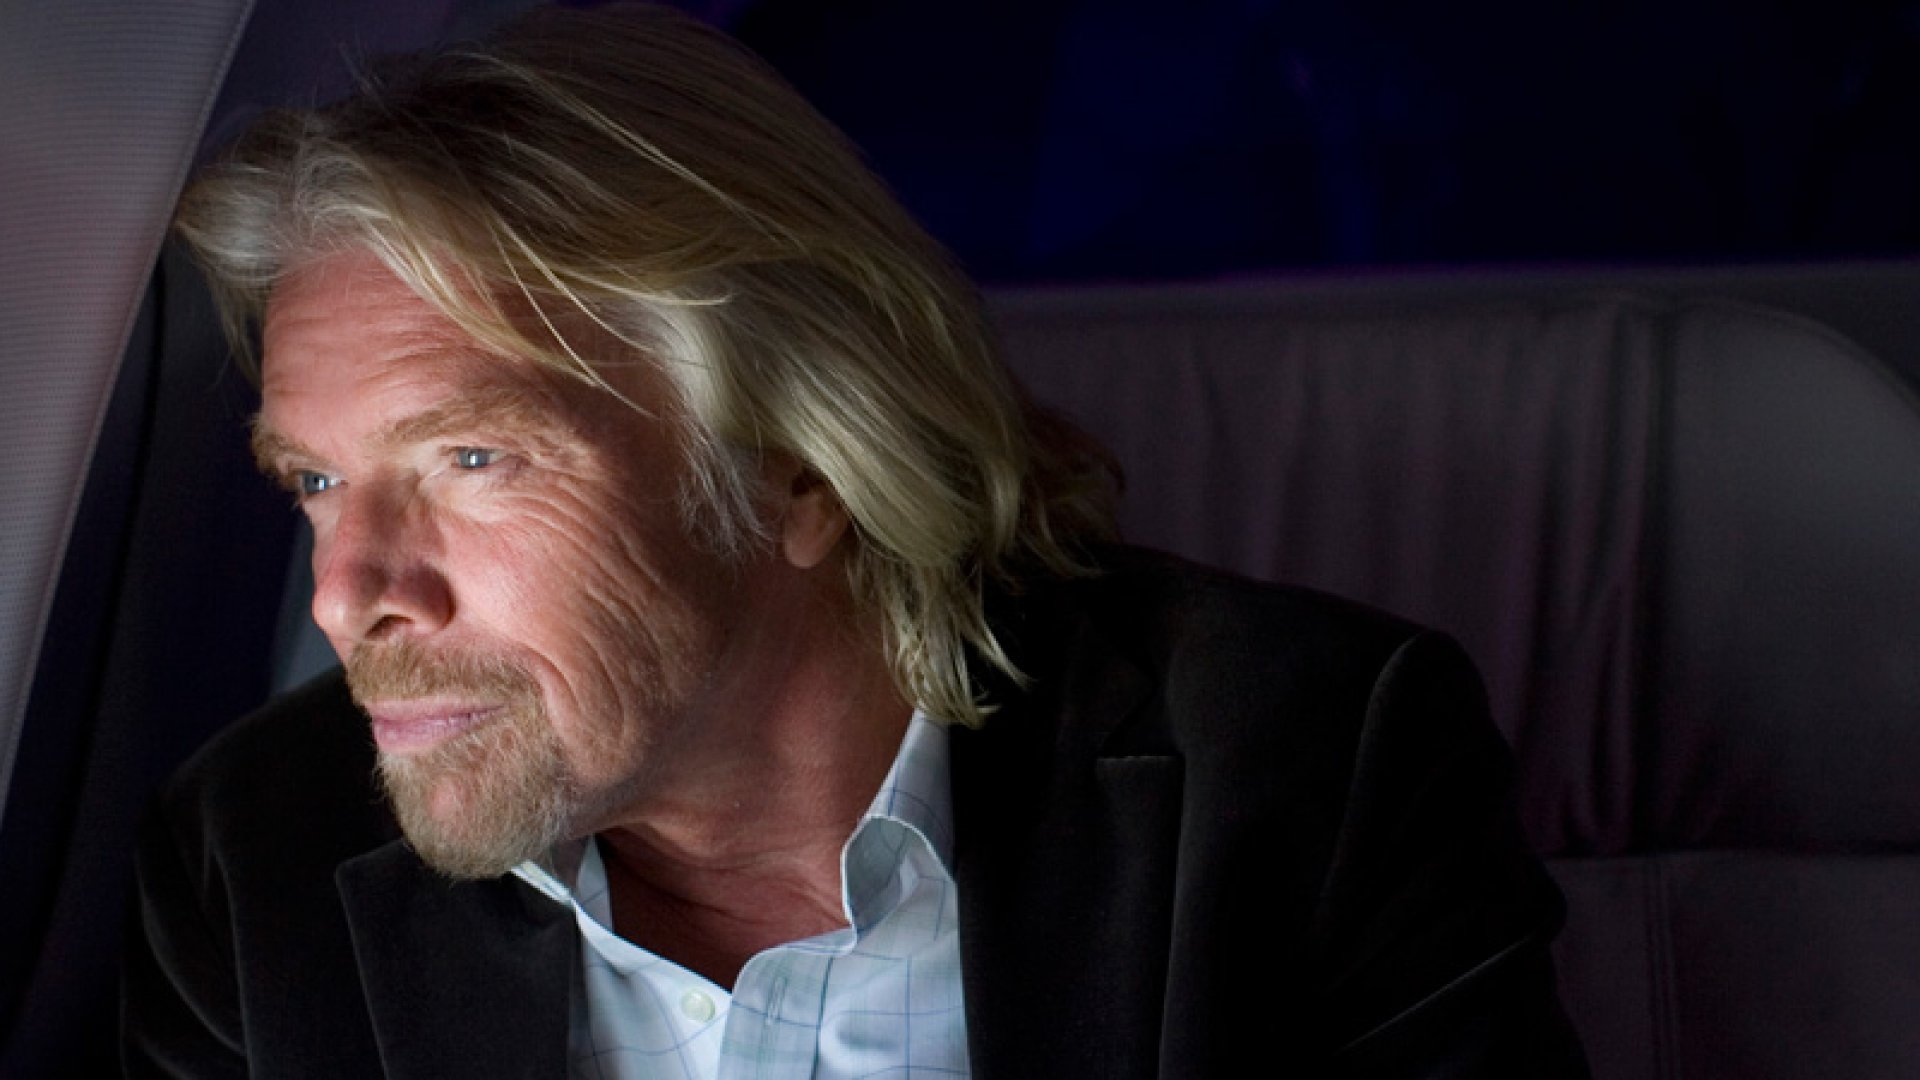 Richard Branson on His Love/Hate Relationship With Government